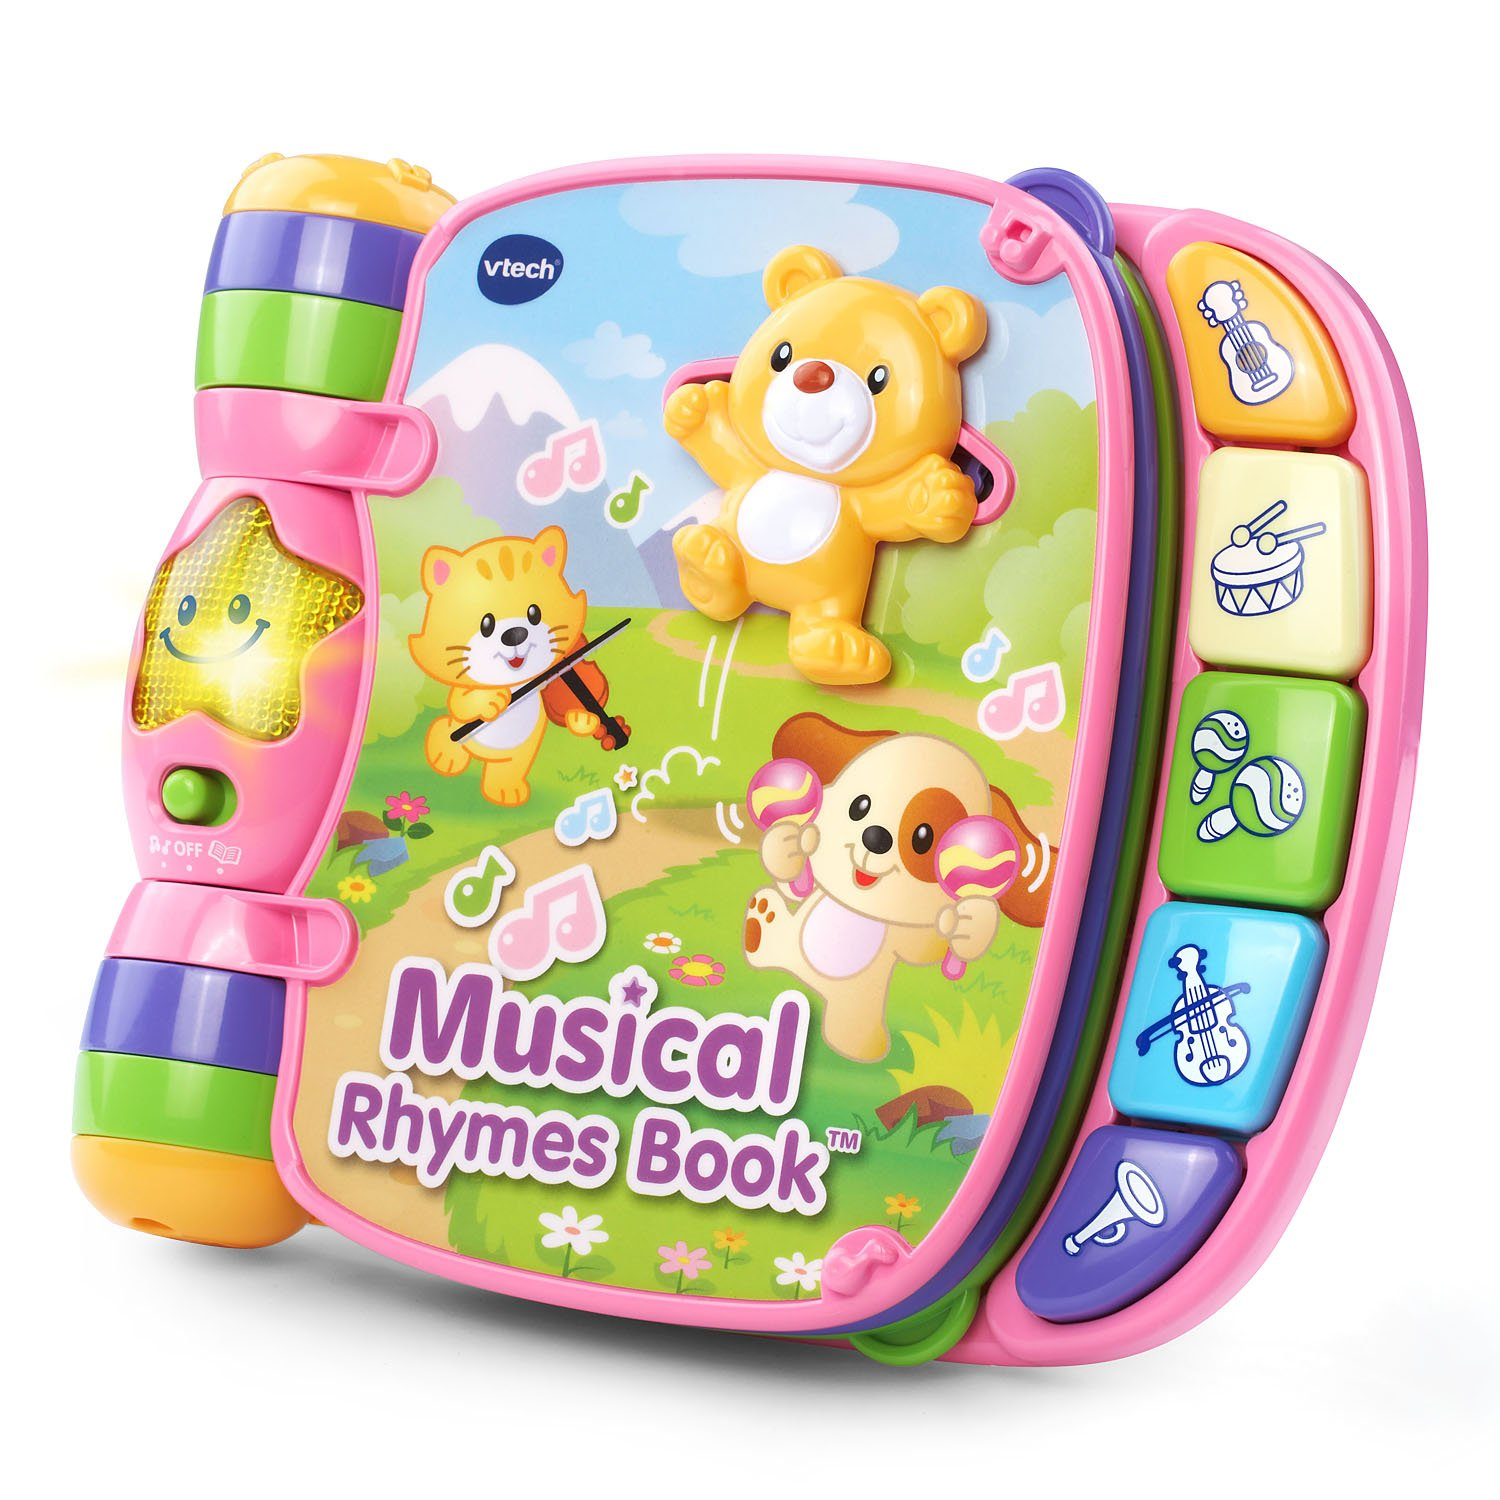 VTech Musical Rhymes Book, Pink by VTech